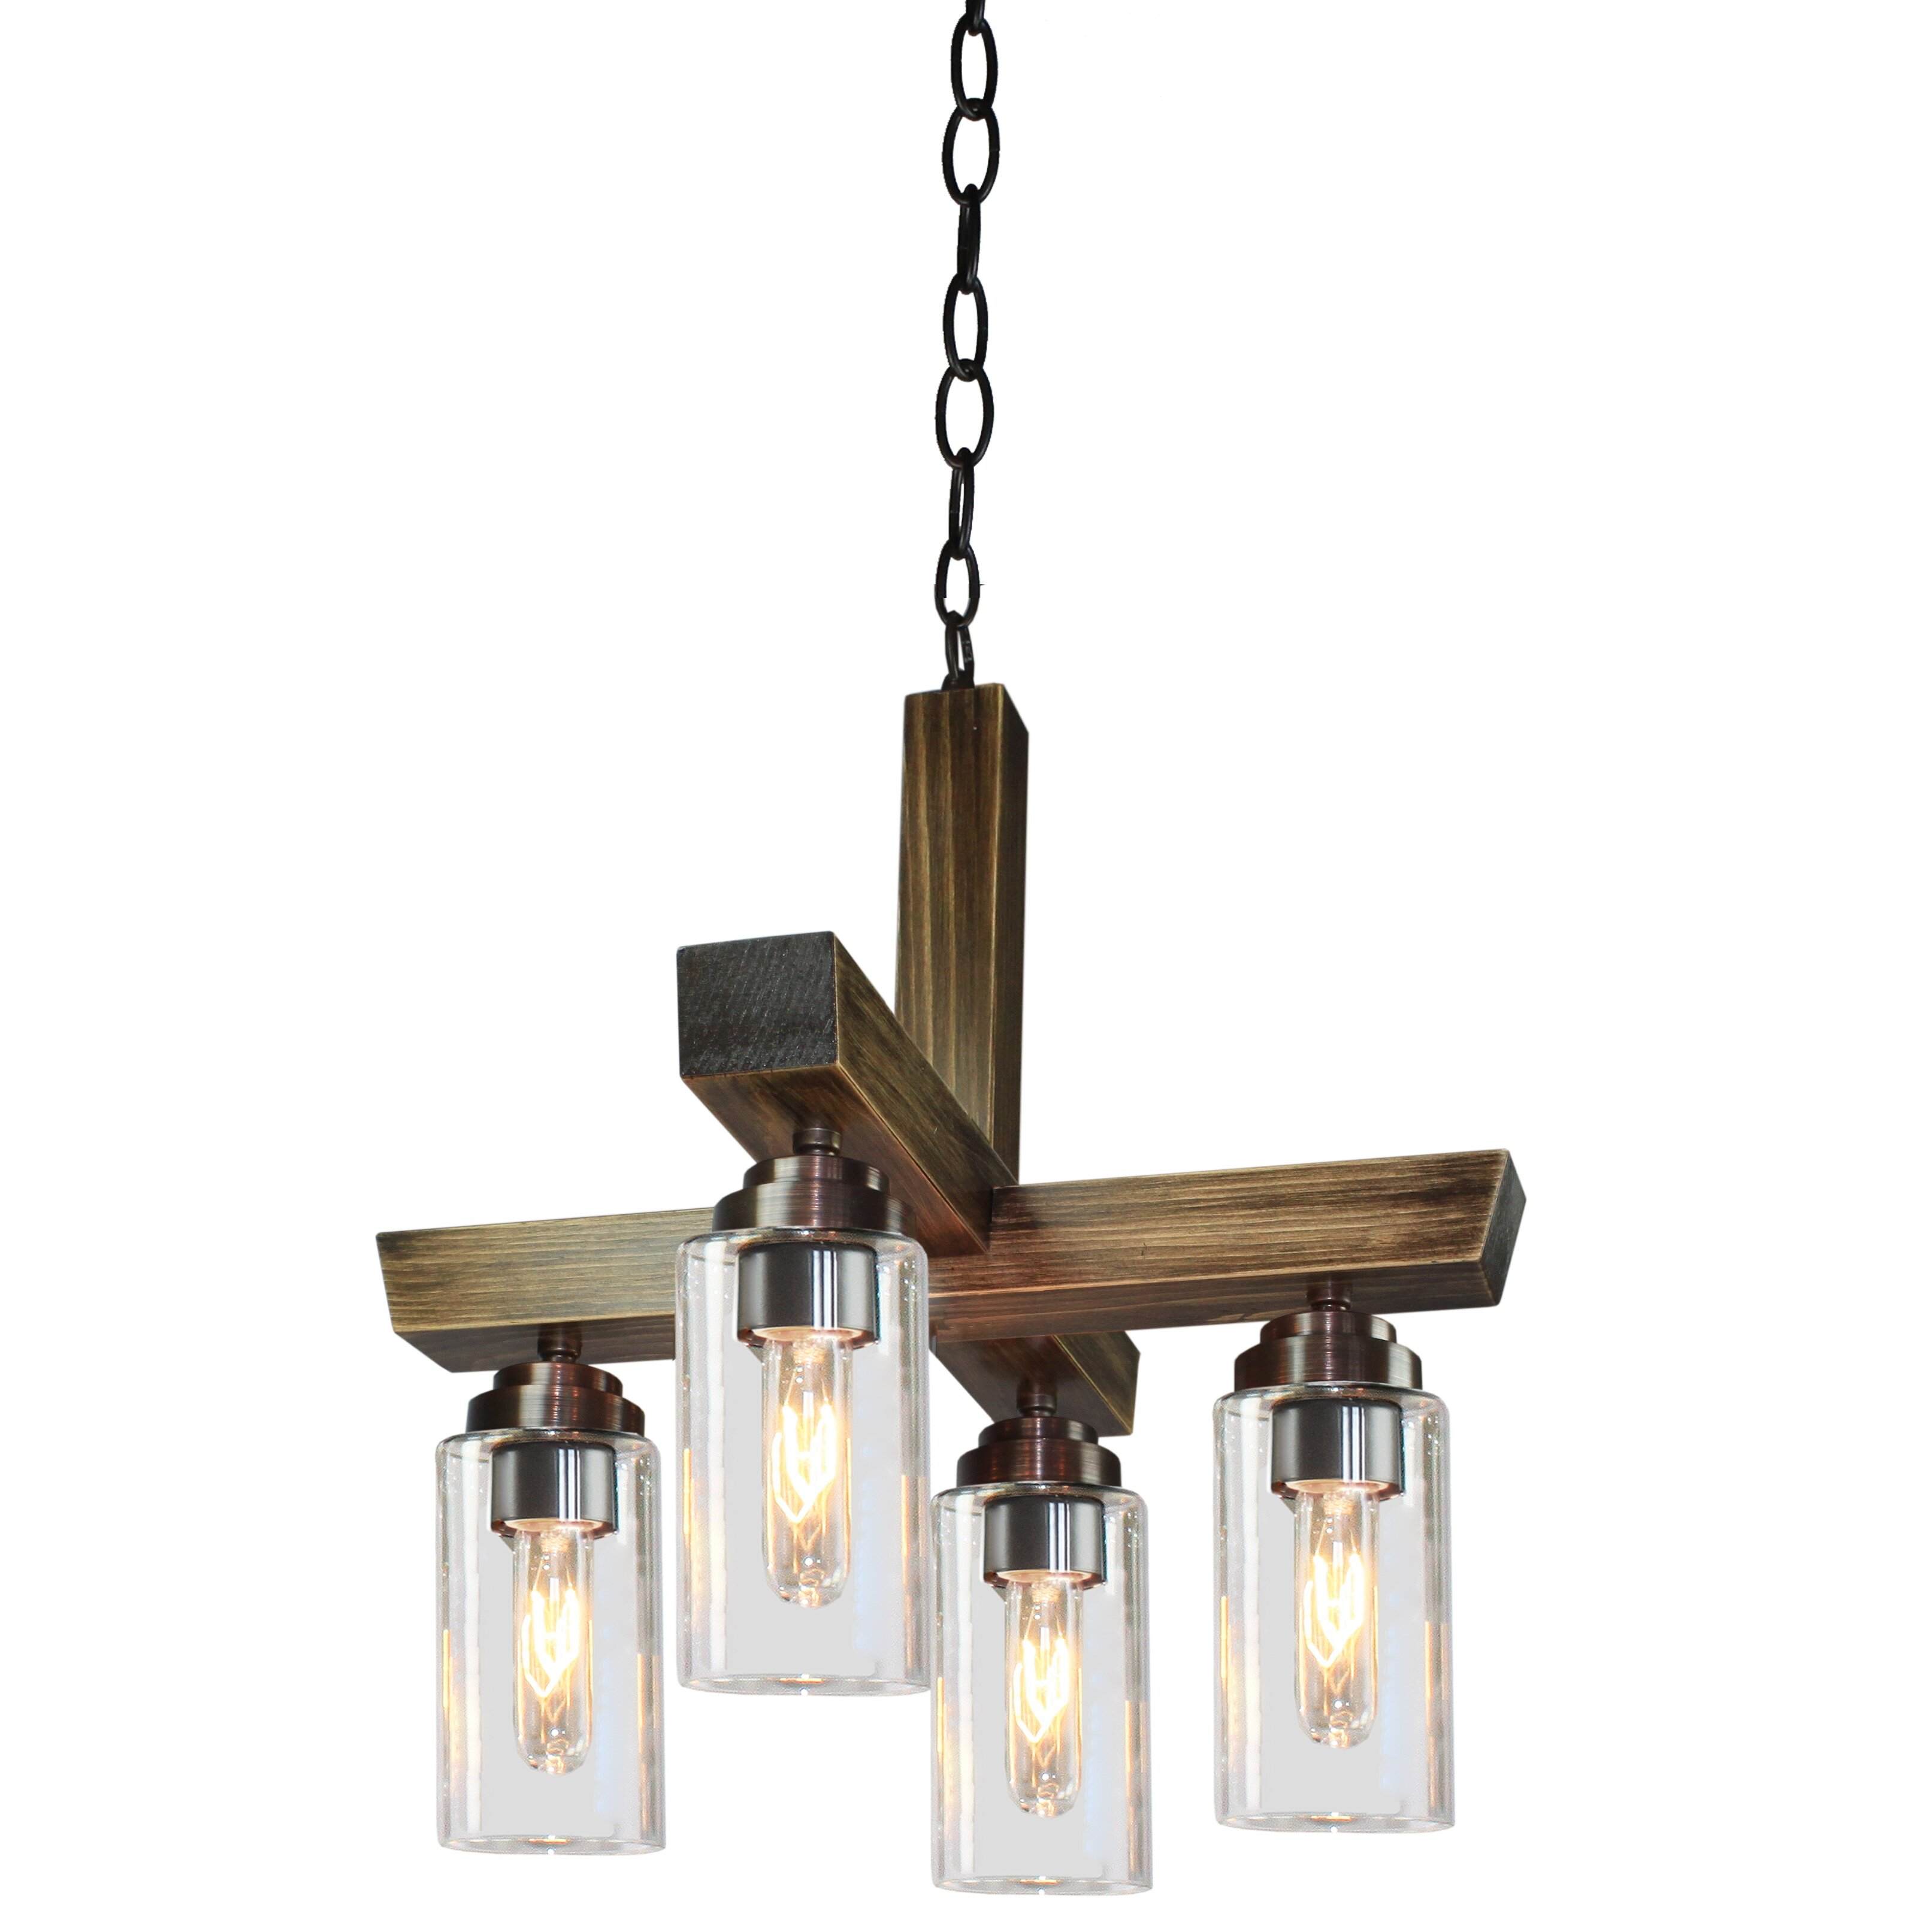 Kitchen Island Pendant Lighting: Artcraft Lighting Home Glow 4 Light Kitchen Island Pendant